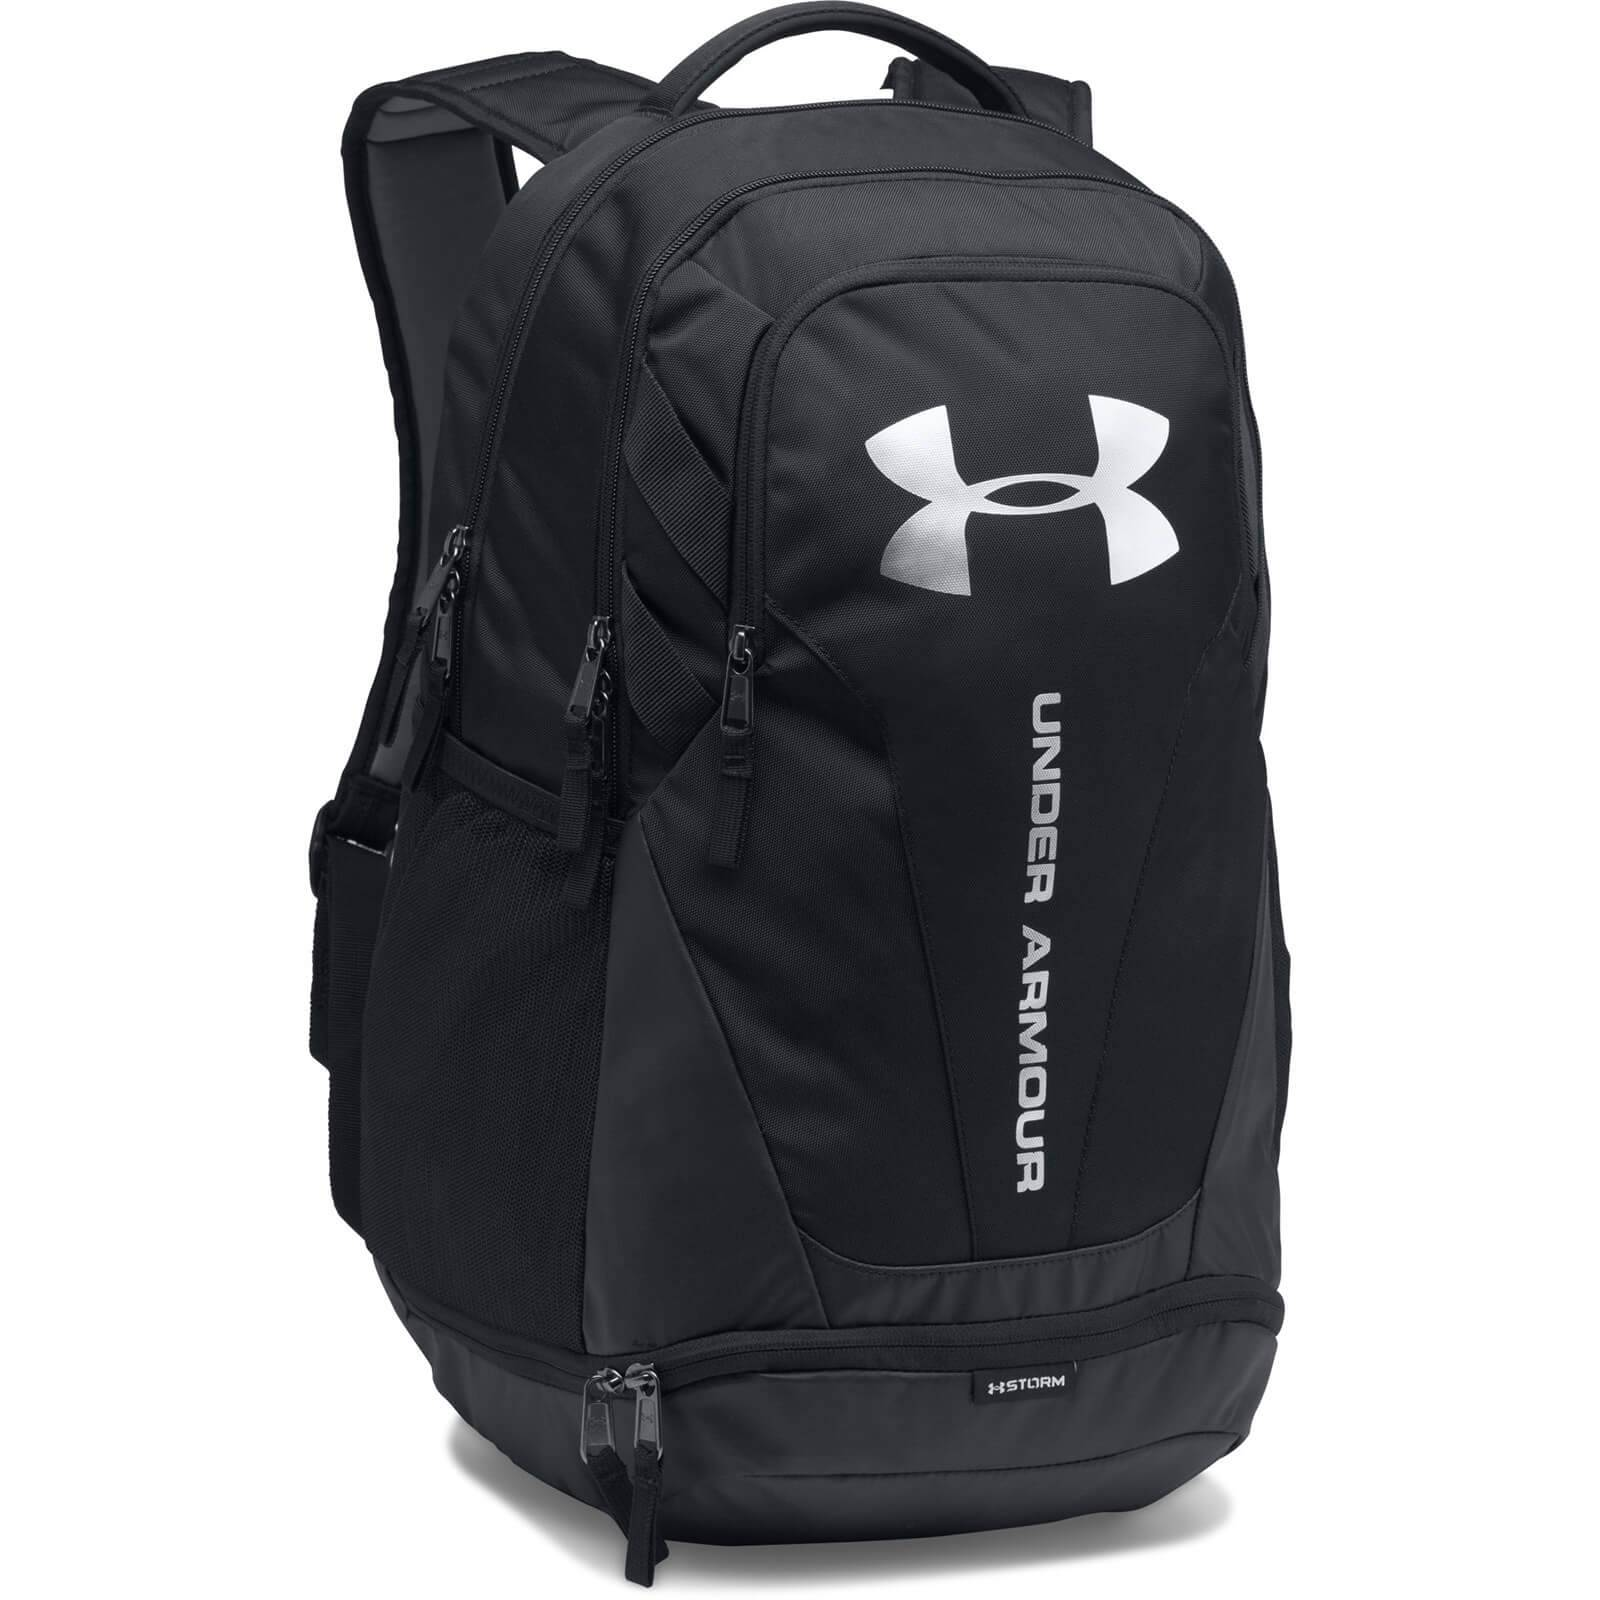 Under Armour Hustle Backpack - Black